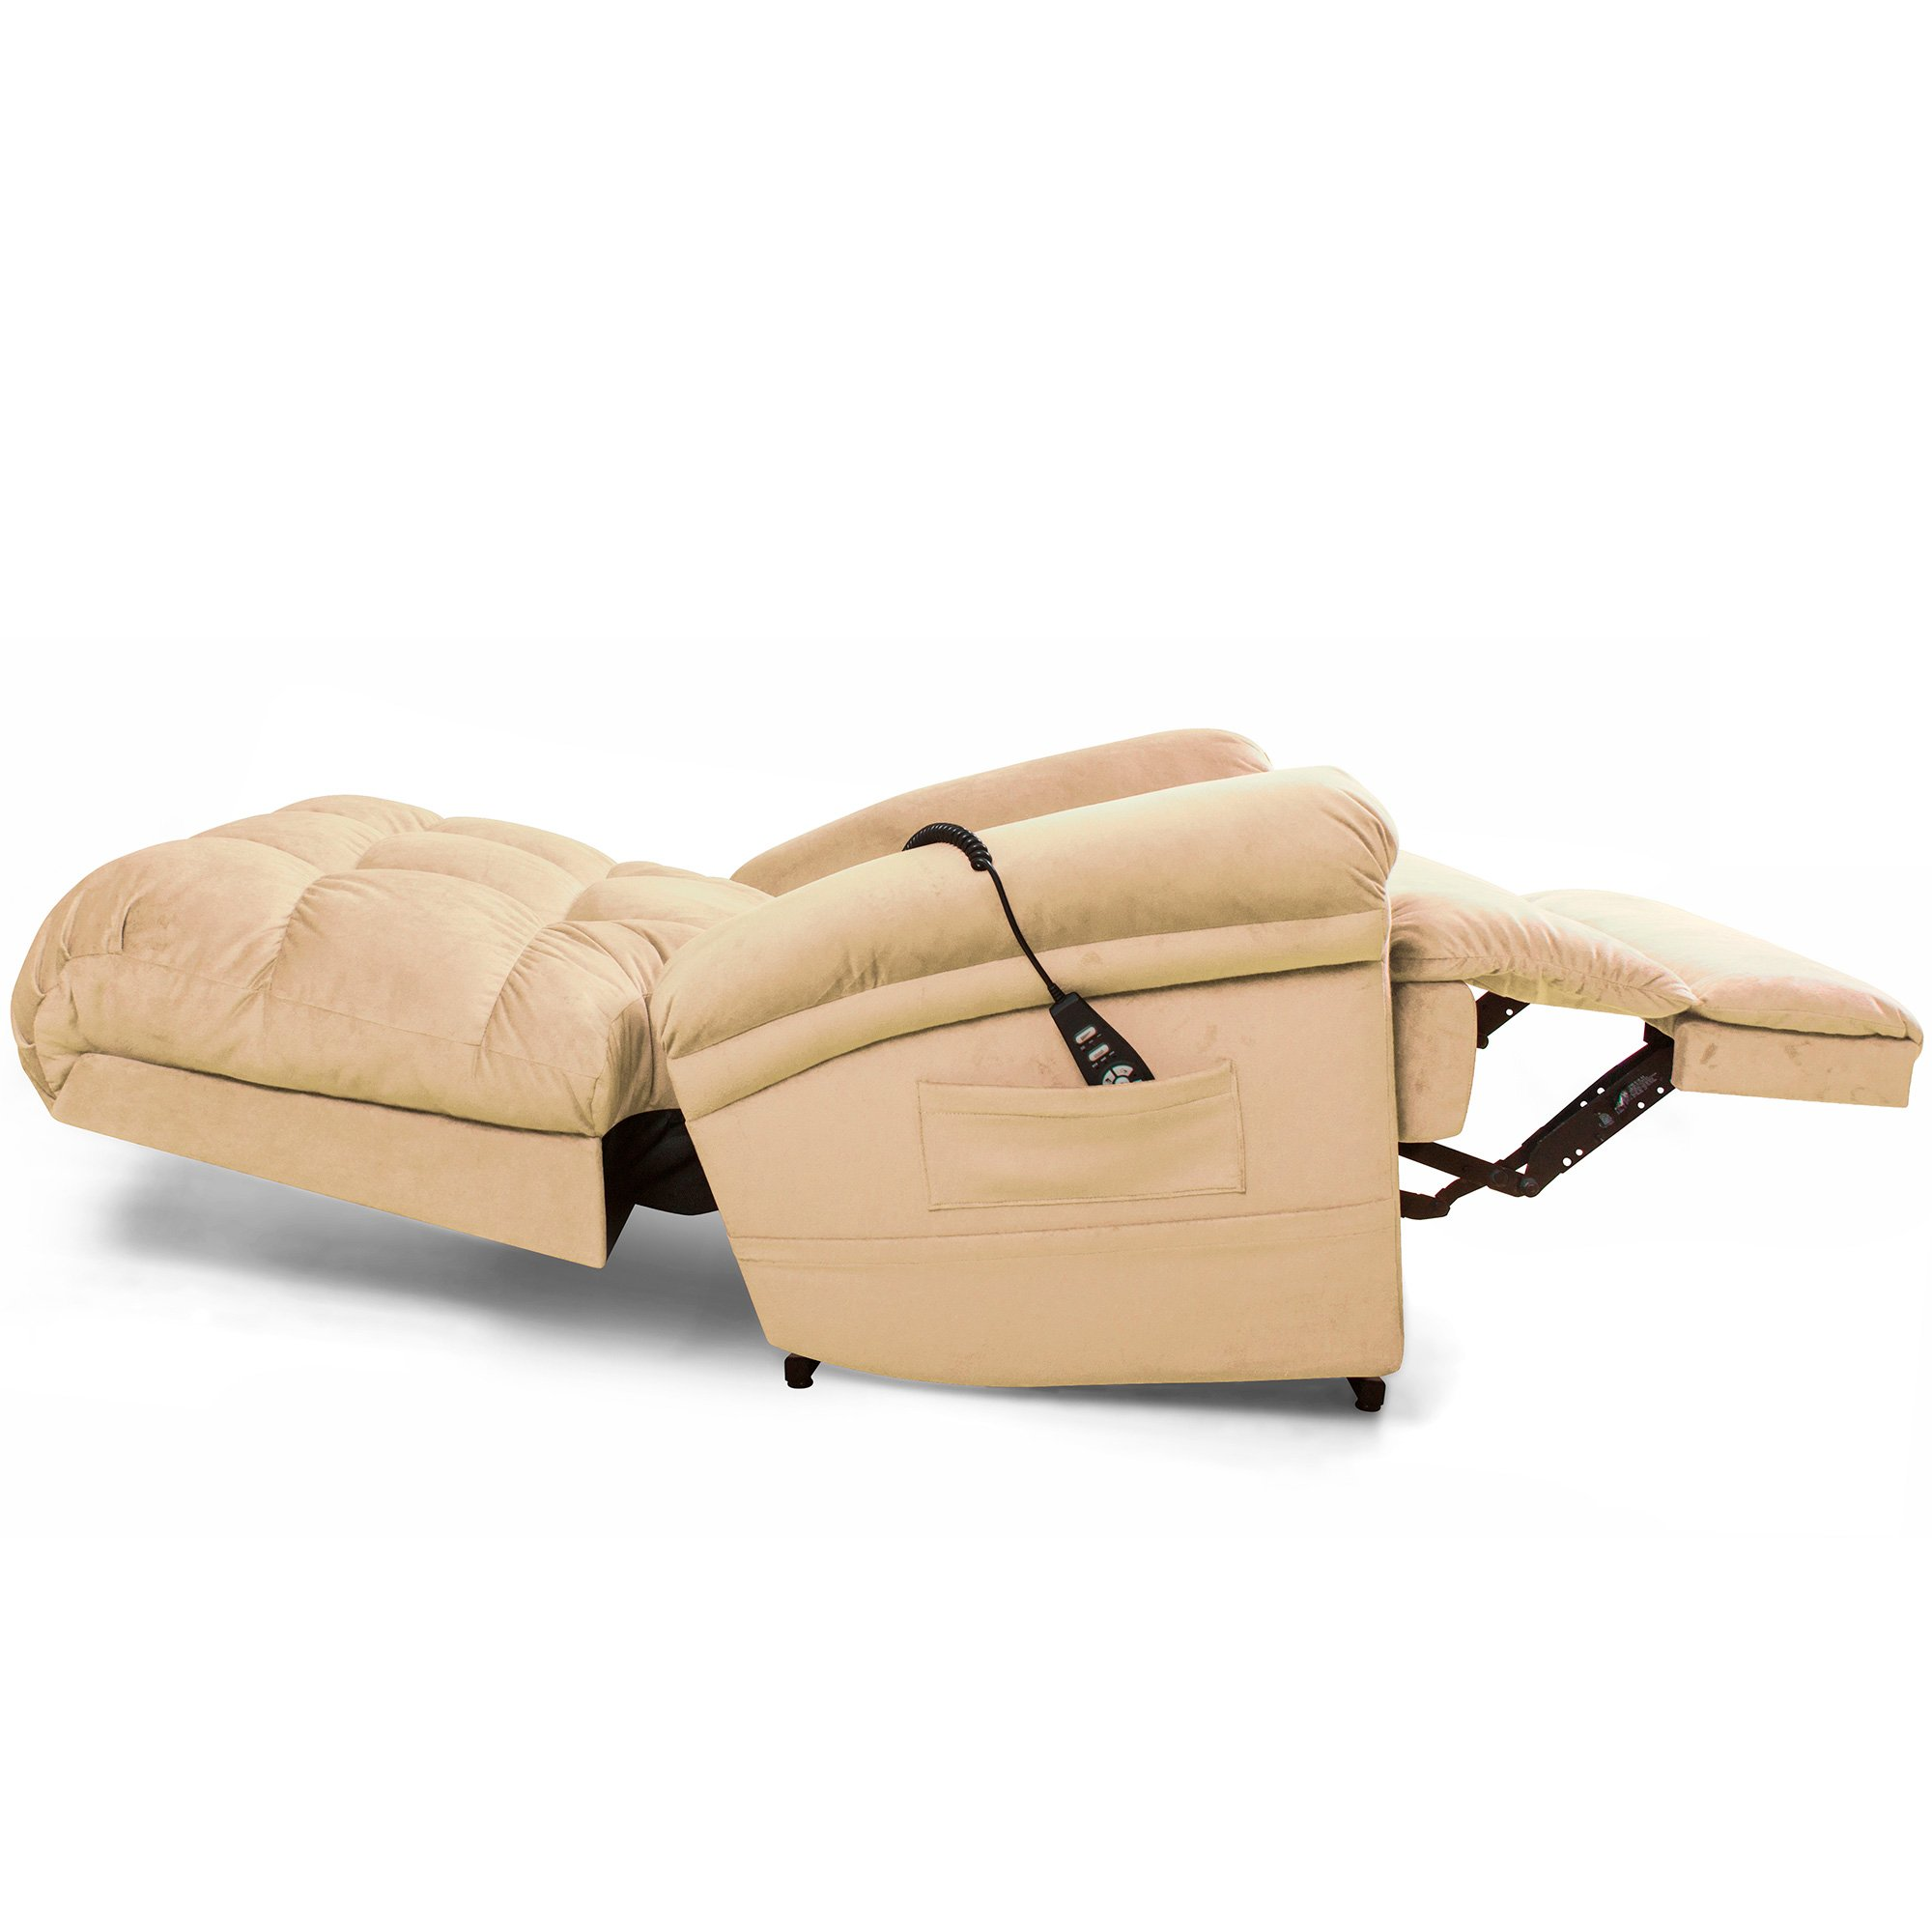 The Perfect Sleep Chair - Lift Chair & Medical Recliner – DuraLux II Microfiber - Cashmere (Tan)